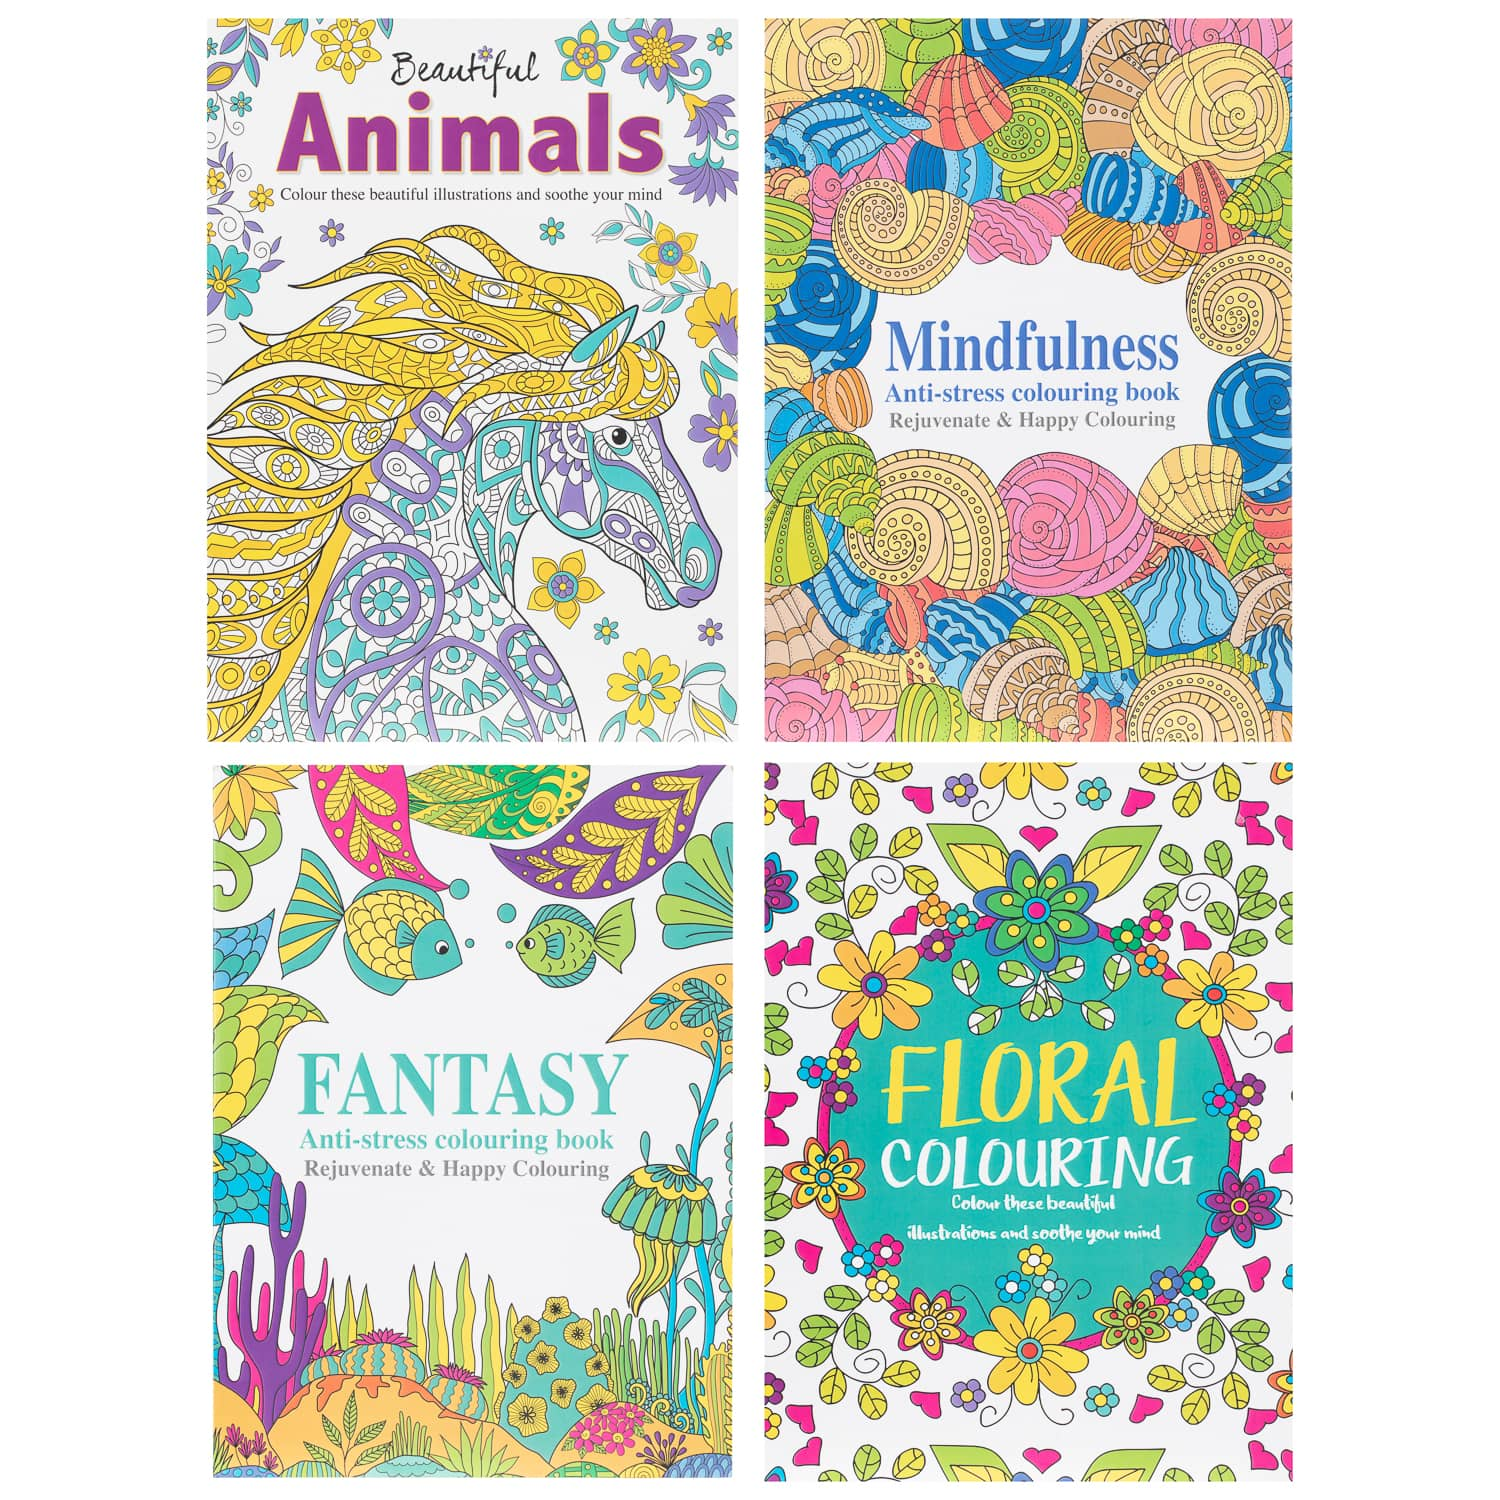 Beautiful Animals Adult Colouring Book | Adult Colouring Books - B&M